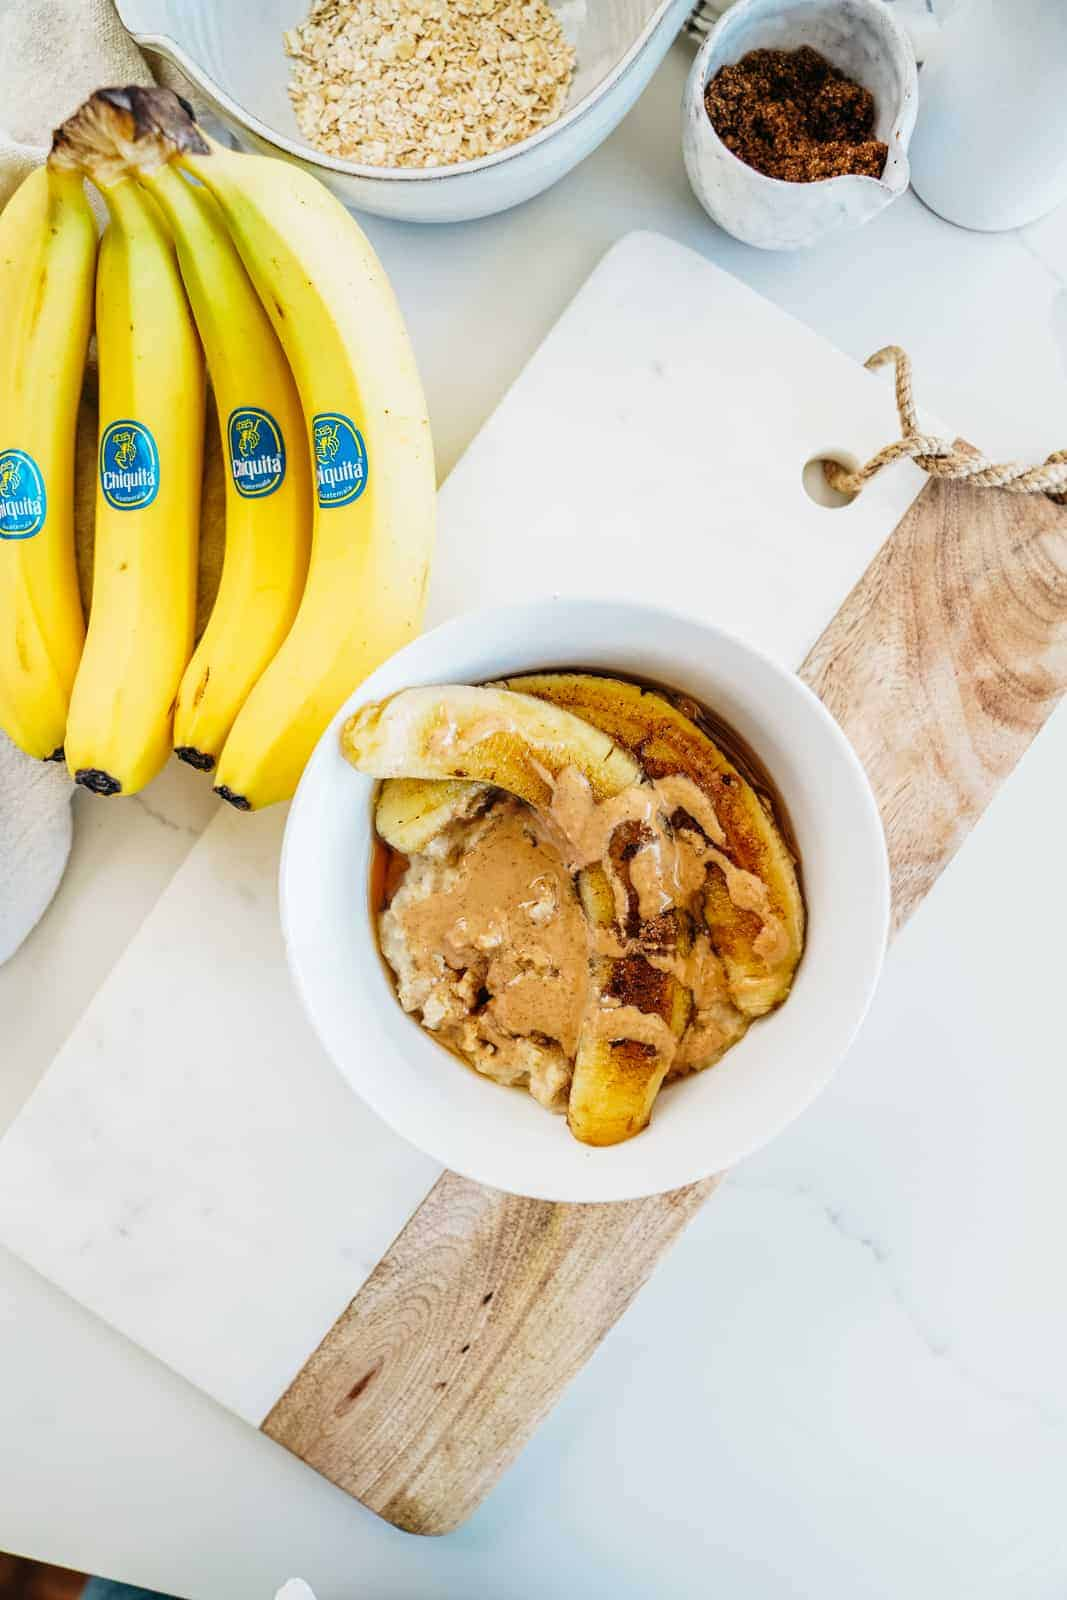 Chiquita Bananas next to cutting board with a bowl of fried banana oatmeal.